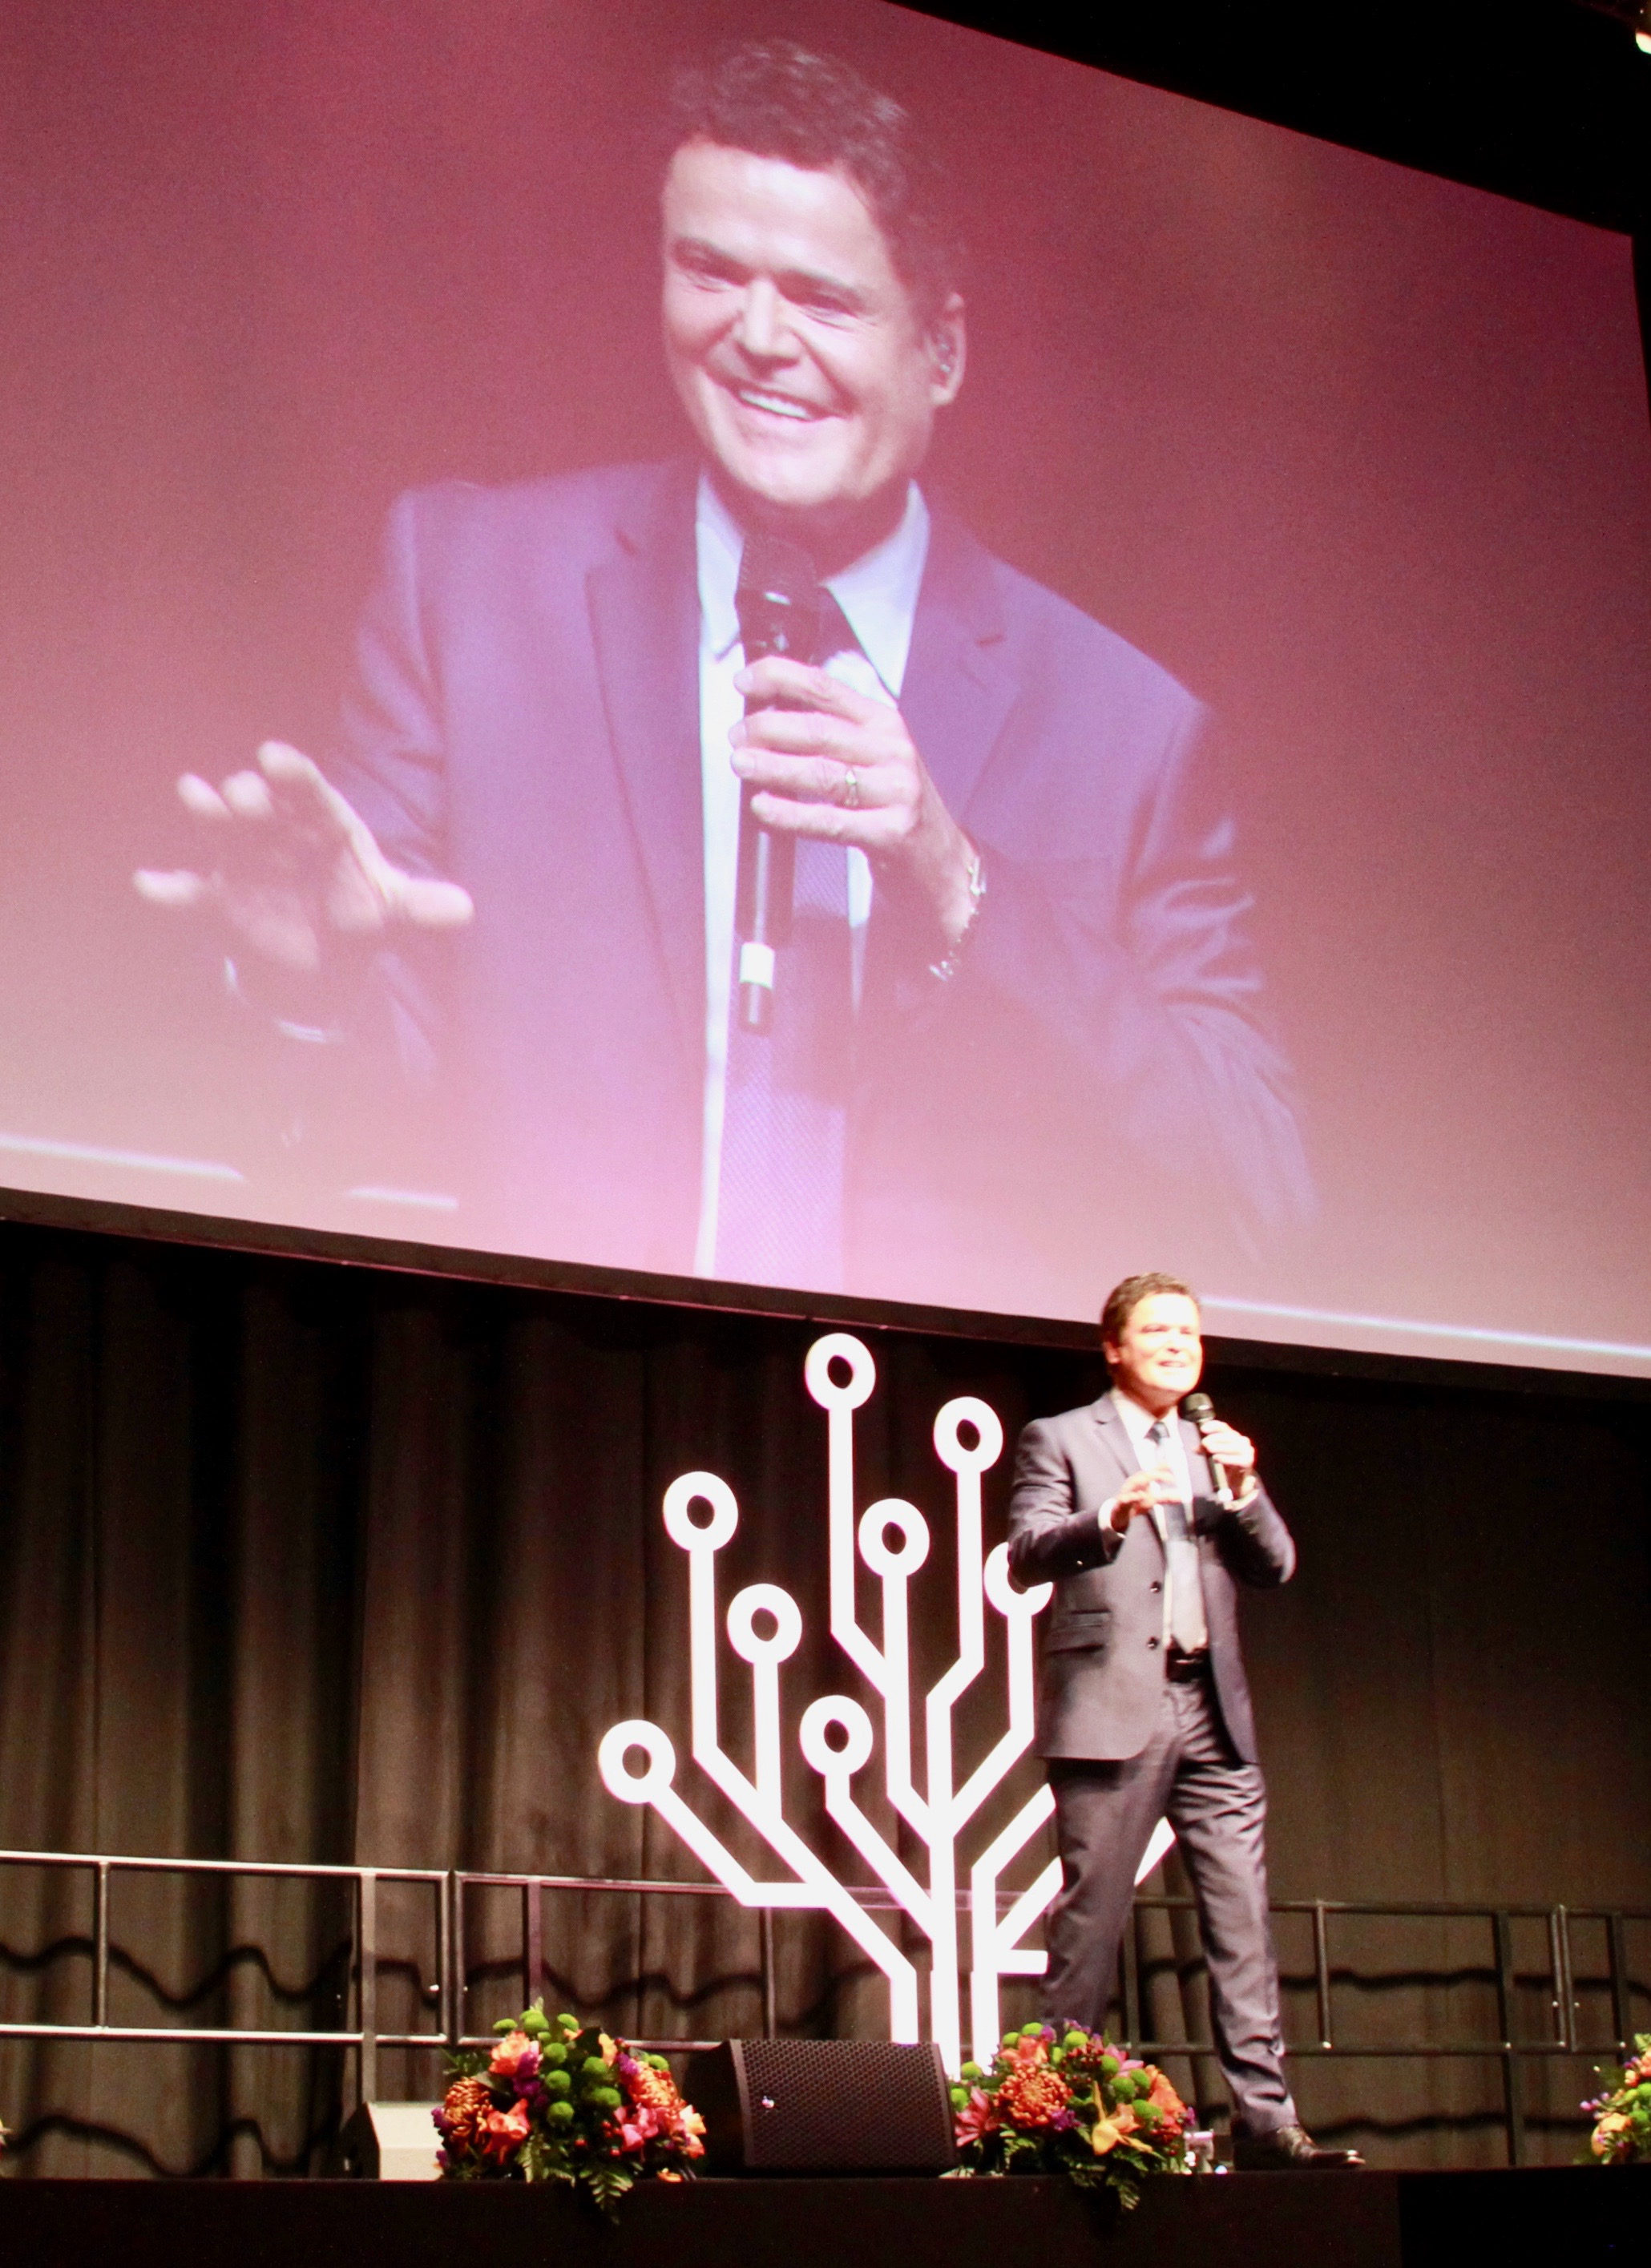 Donny Osmond entrains the London ExCel auditorium crowd during London RootsTech on Saturday, Oct. 26, 2019.